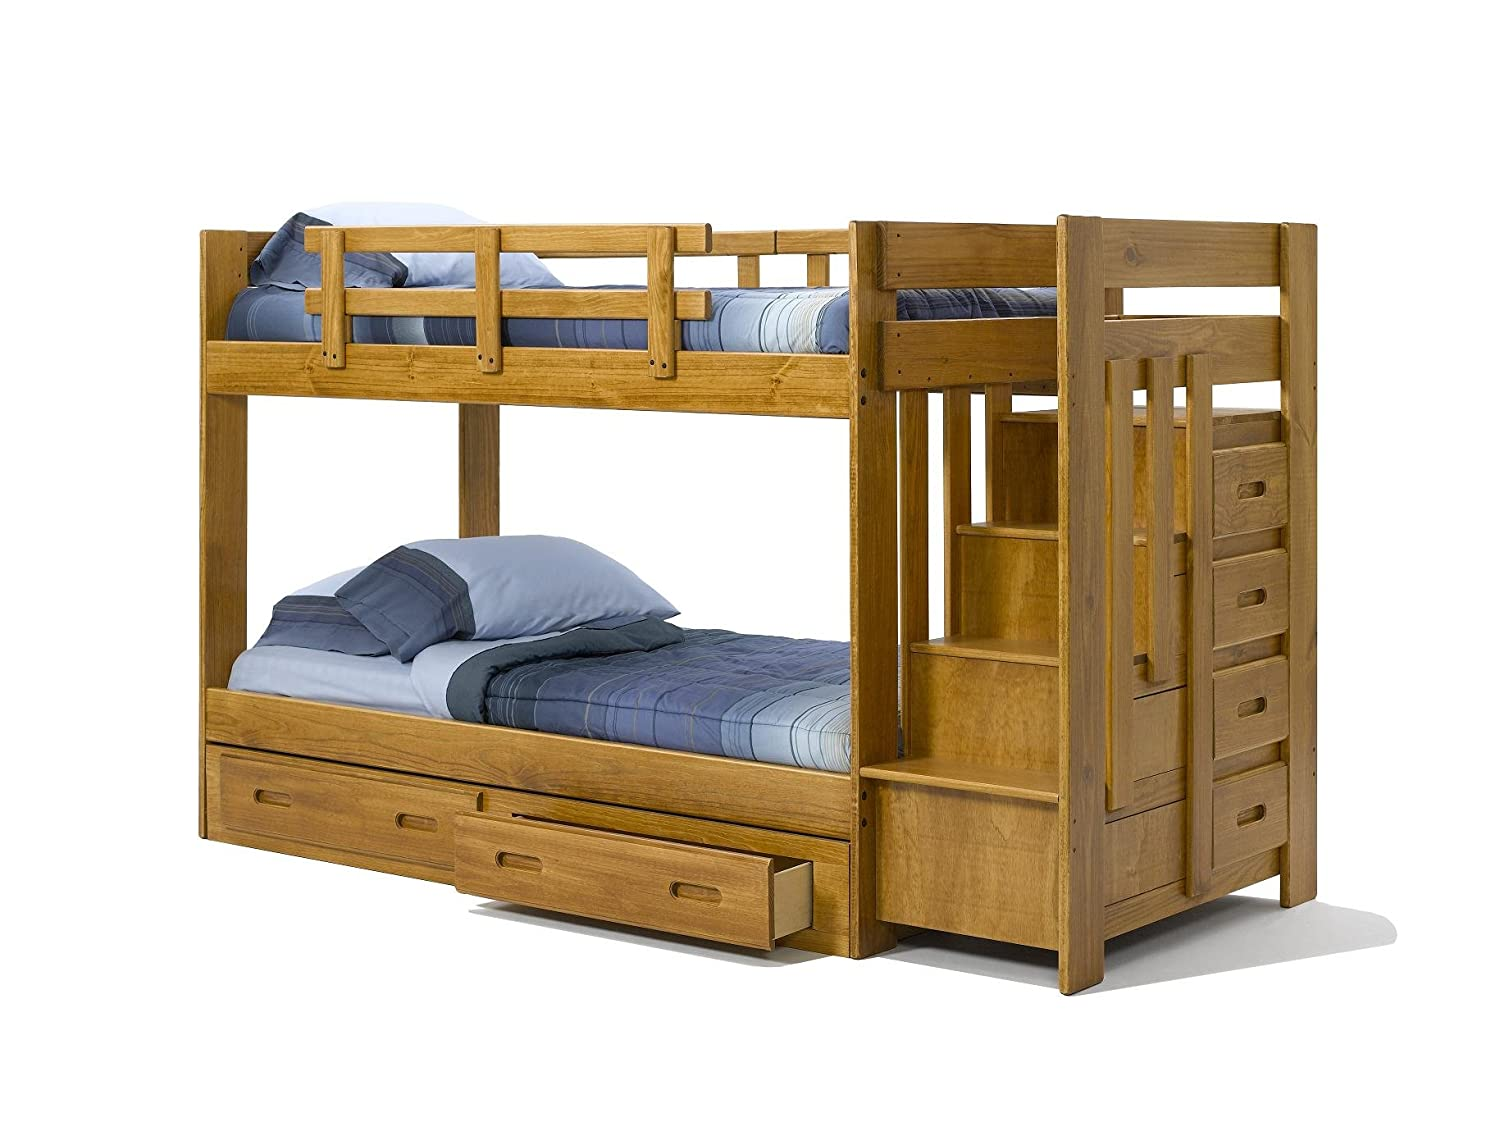 ... are some of the things to consider or look for when buying a bunk bed